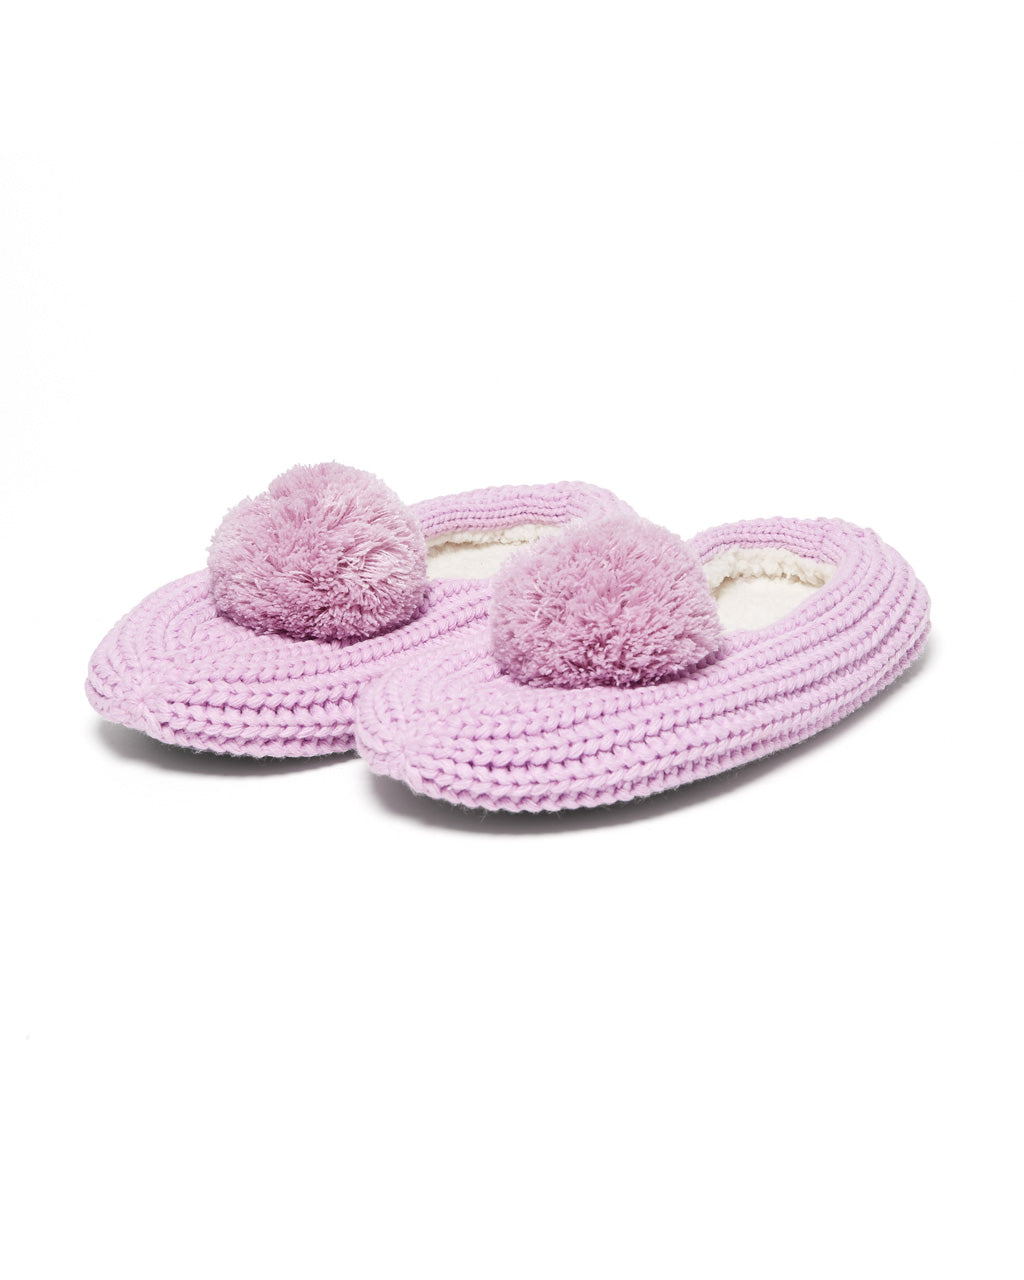 Purple knit slippers with tonal purple pom poms.